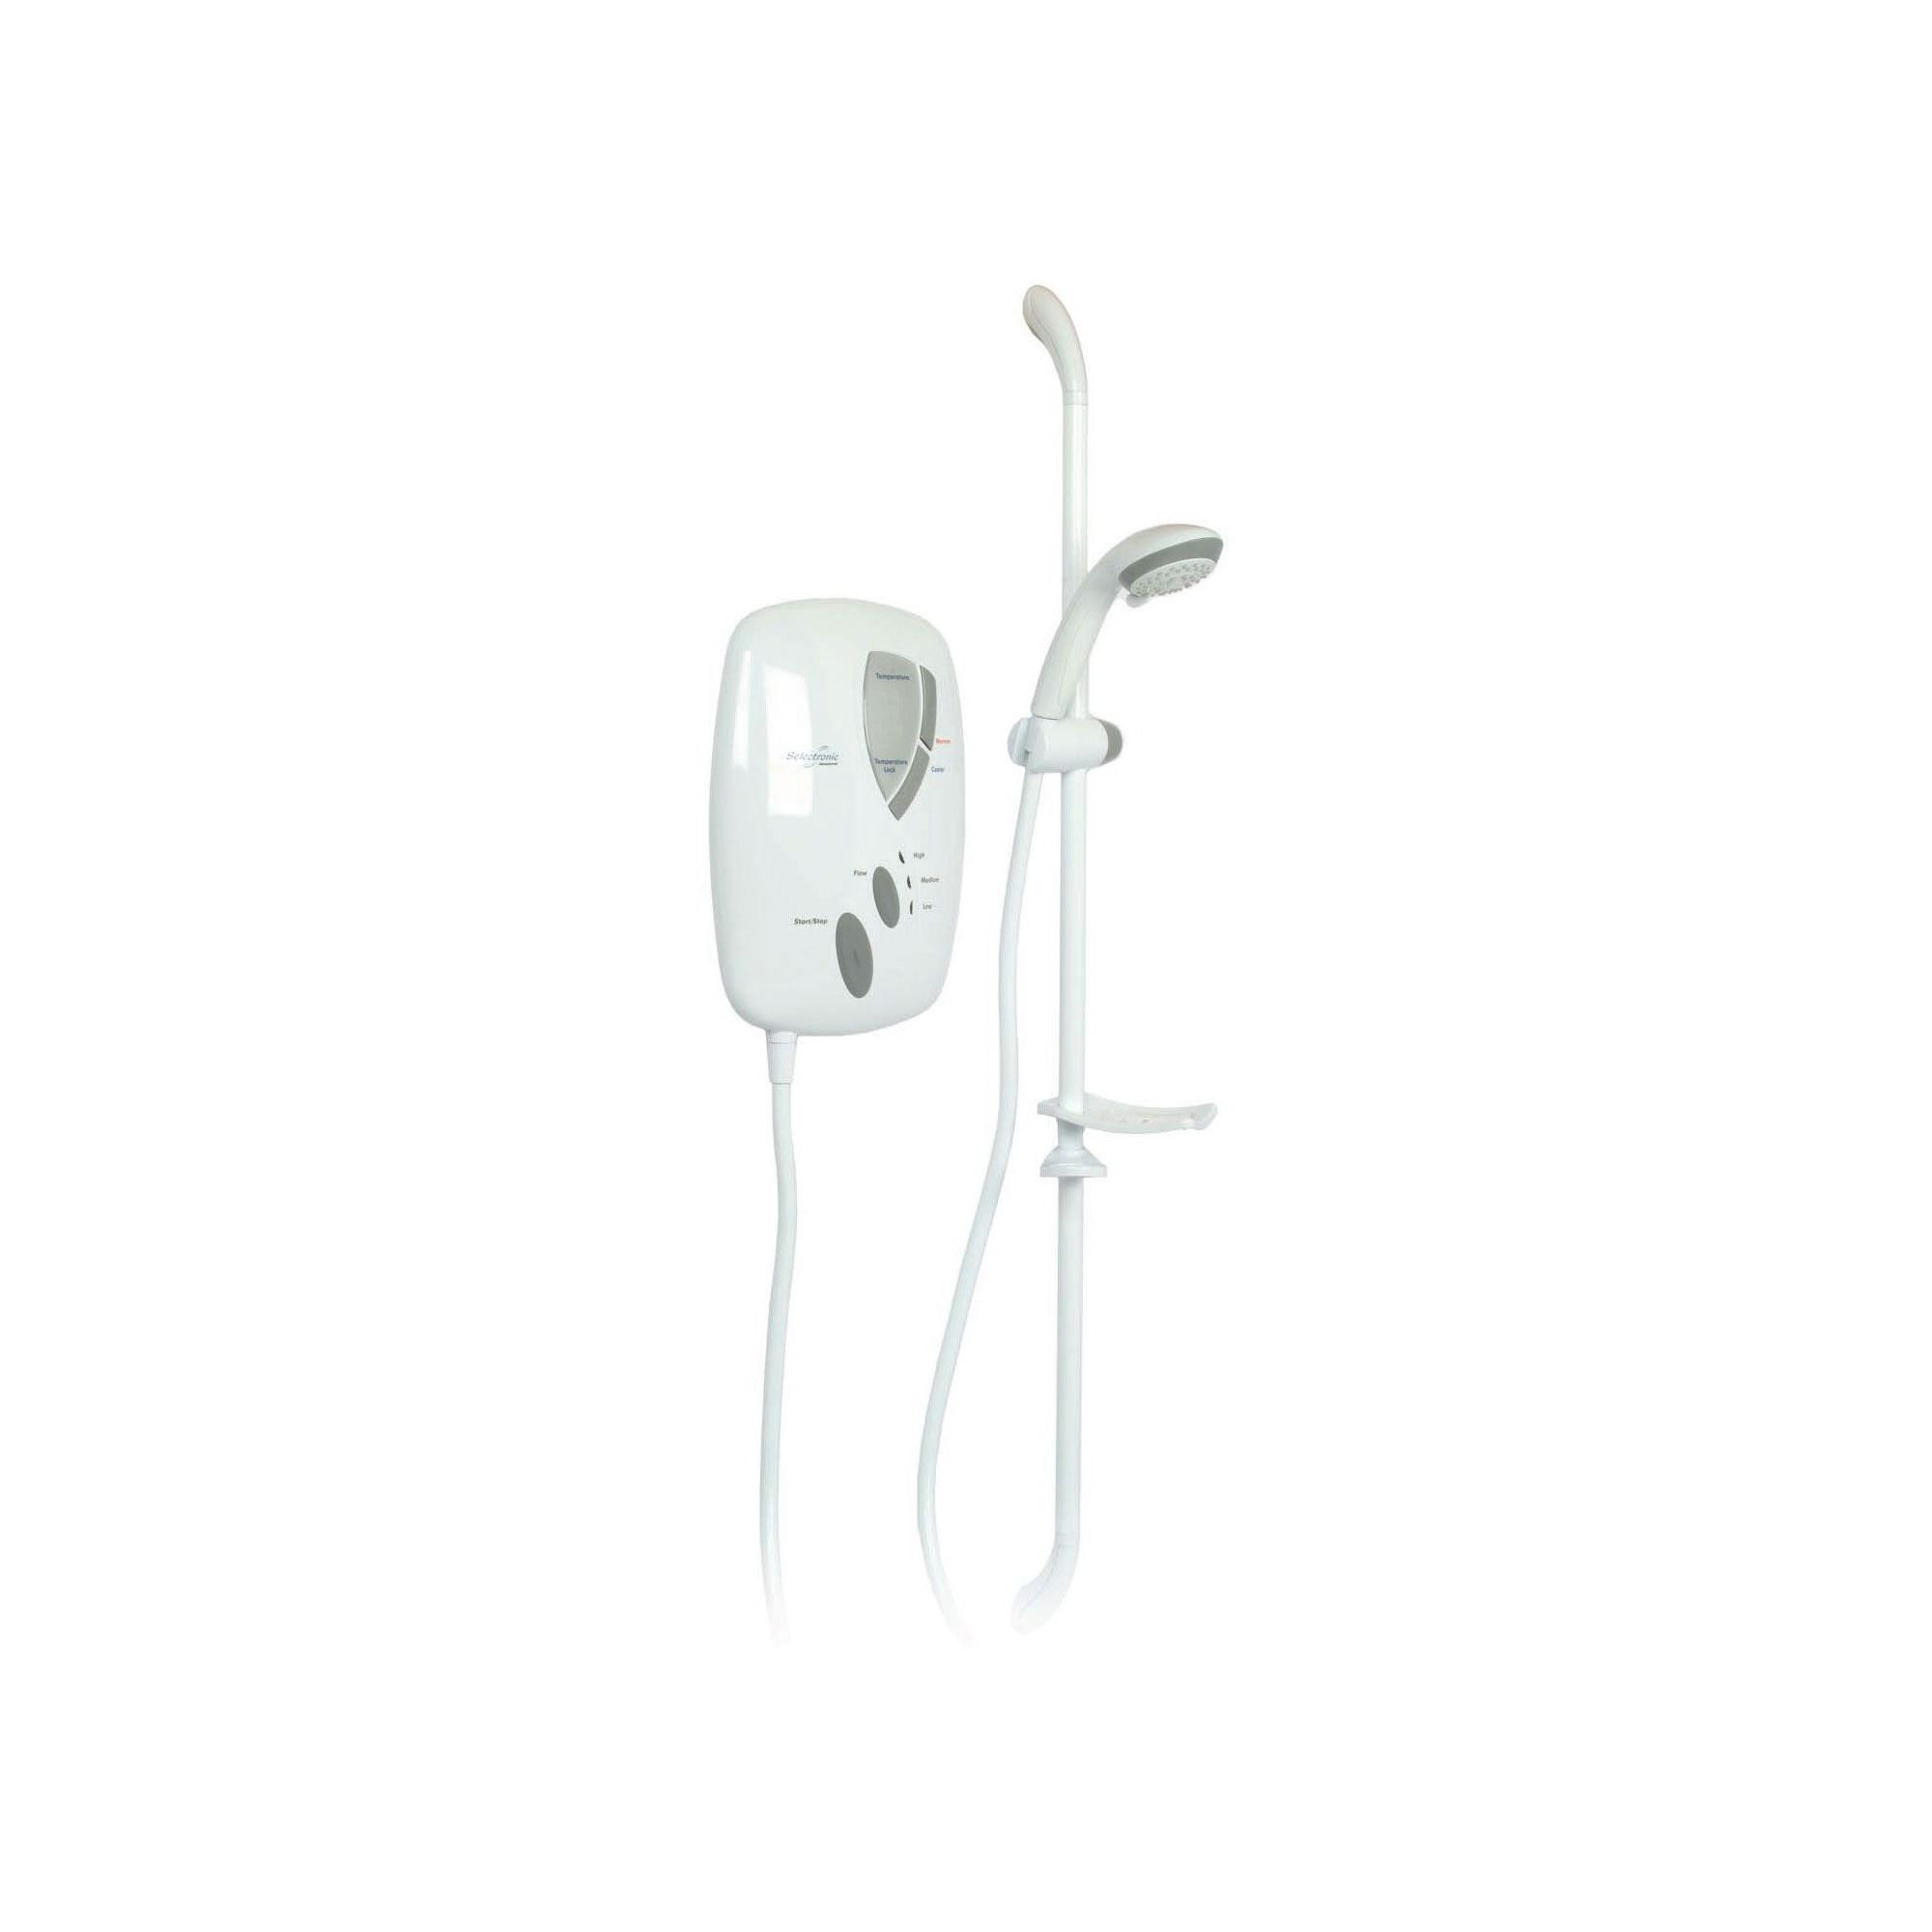 Redring Selectronic Plus 9.5kW Electric Shower at Tesco Direct